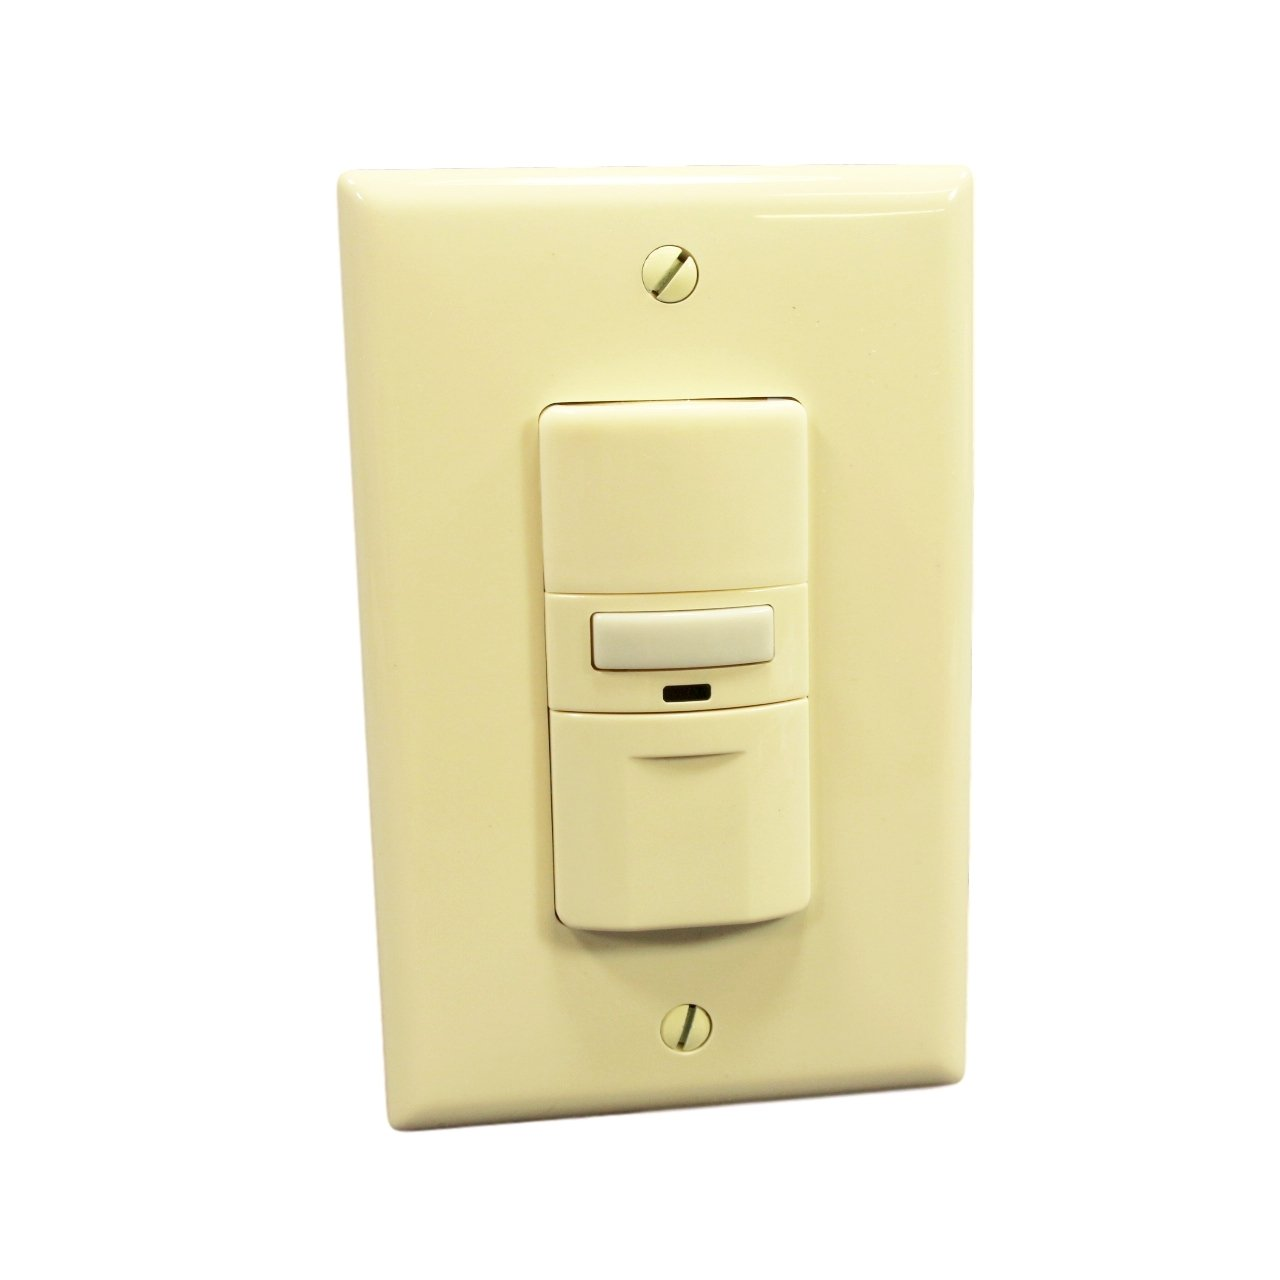 Cooper Wiring Devices Motion Light Switch Just Diagrams Diagram Vs310u La Almond Activated Wall